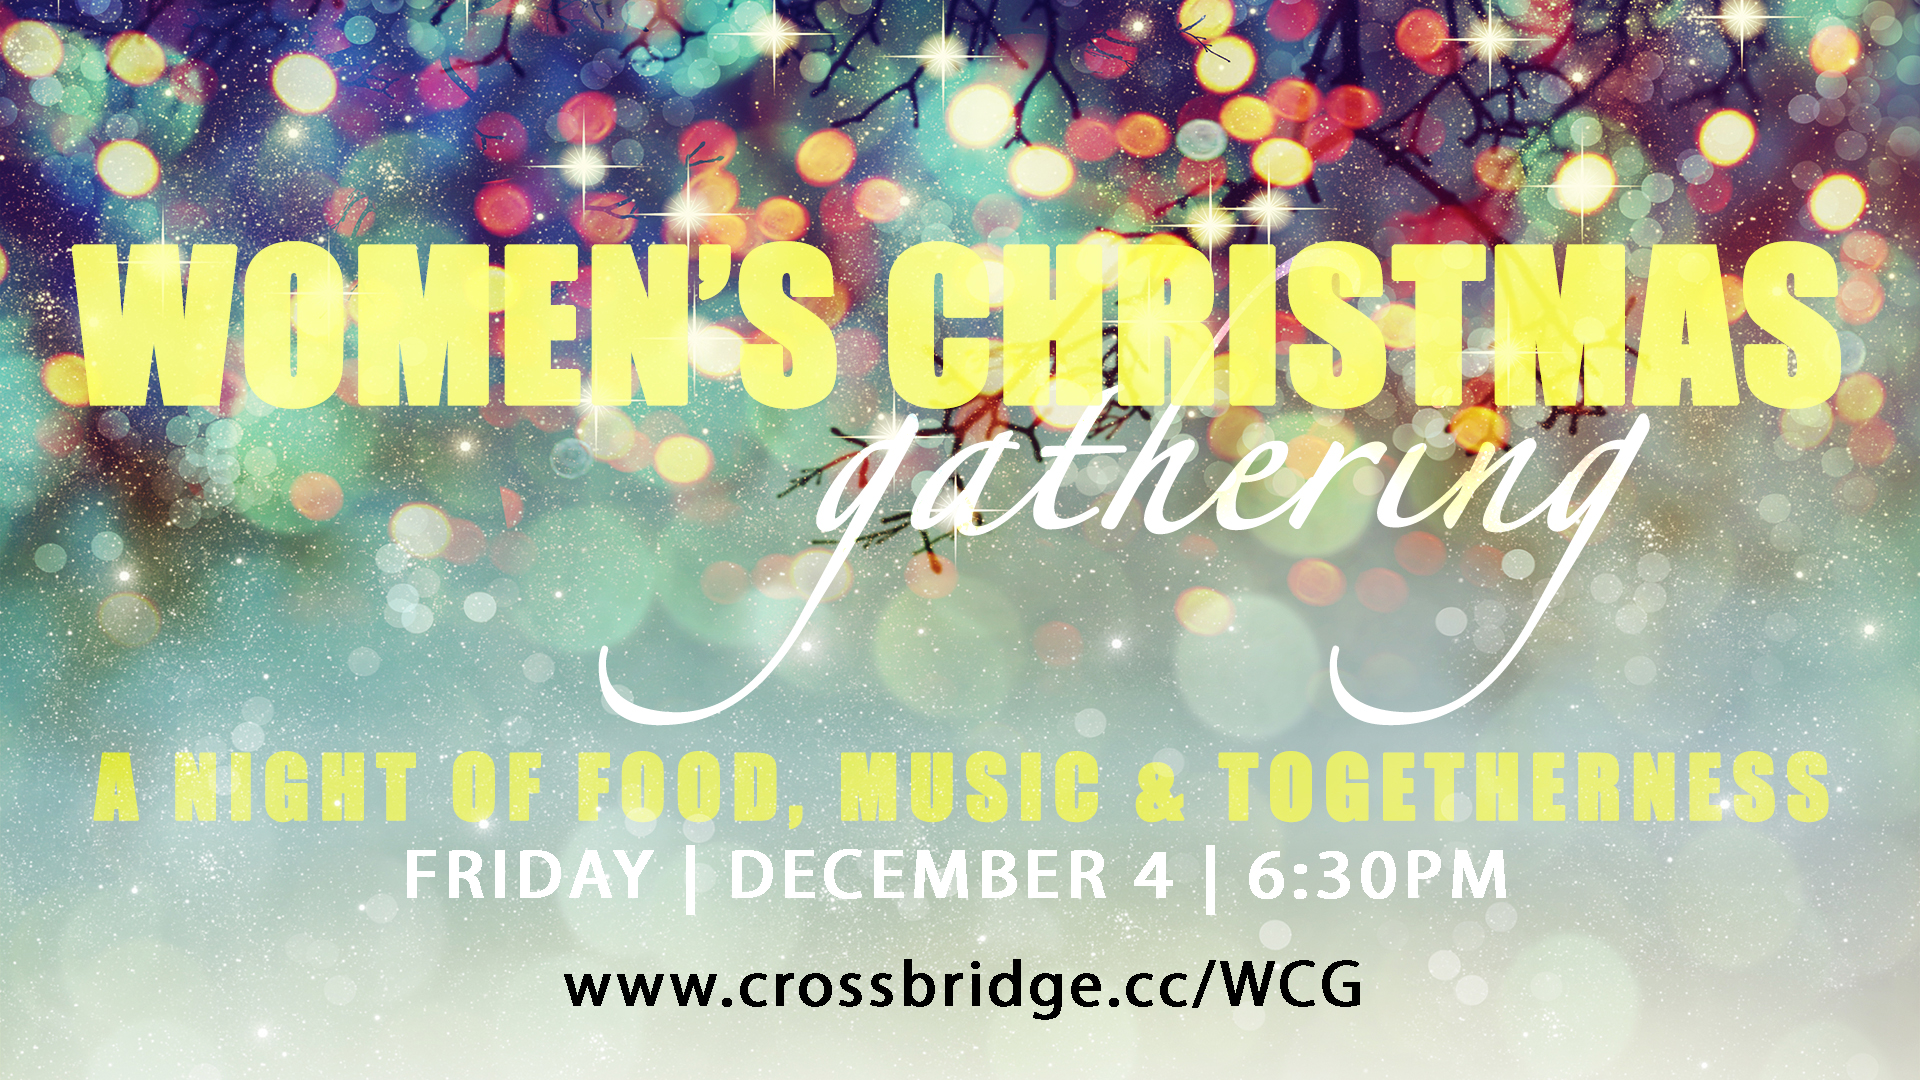 WOMEN'S CHRISTMAS GATHERING: A Night of Food, Music & Togetherness   Friday, December 4 I 6:30PM  I  Tickets Available Beginning this Sunday!  Come celebrate the Christmas season with dinner, visiting with friends and family, and an inspirational program of music and the gospel. Get more information and tickets  HERE !